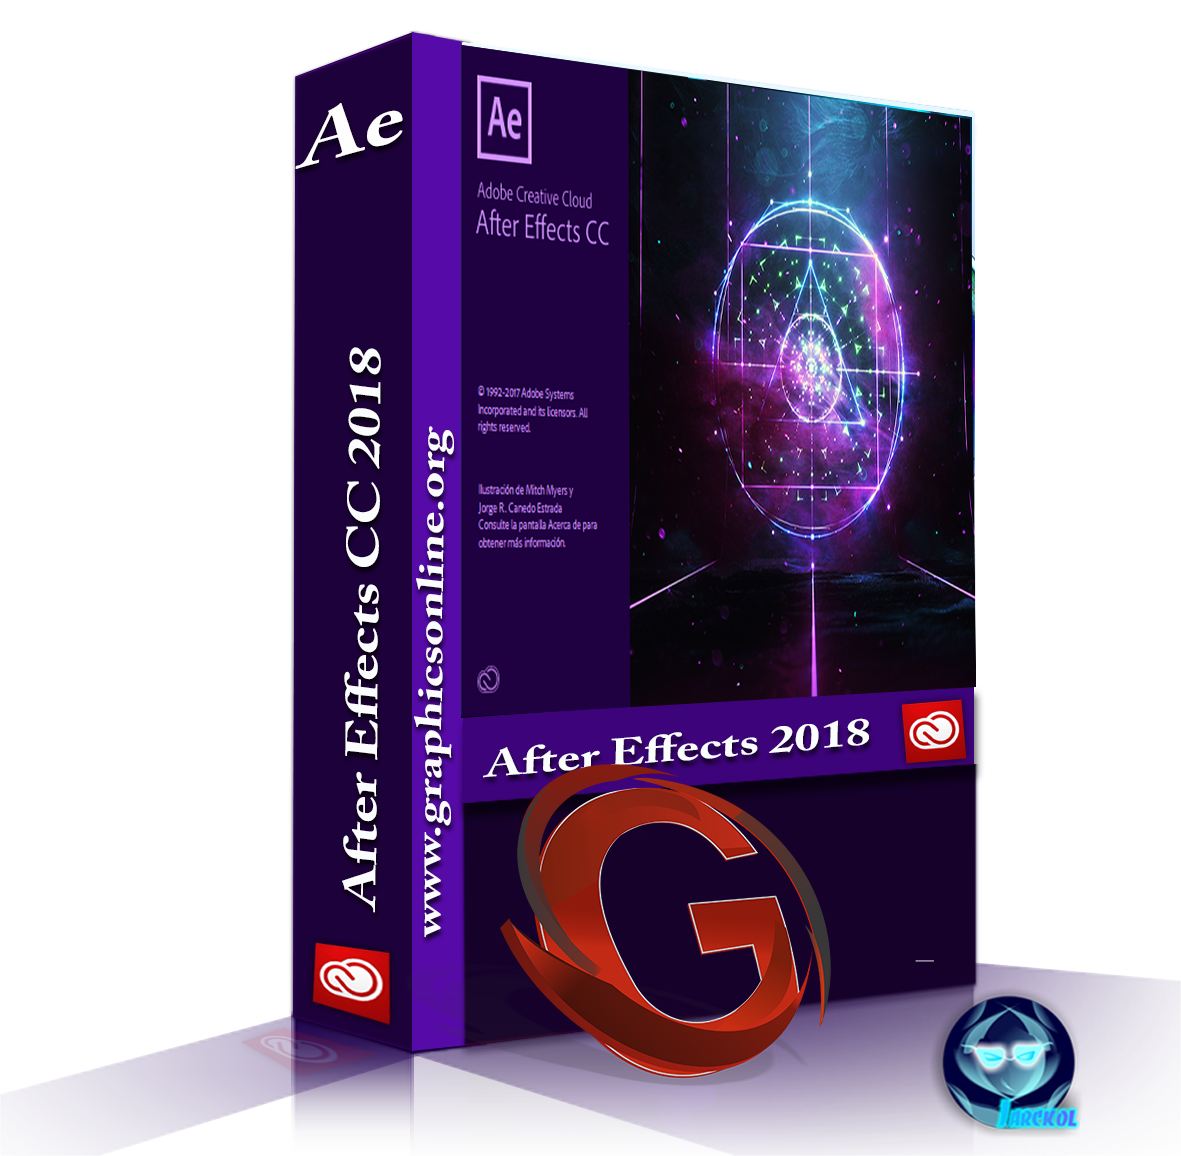 Adobe After Effects CC 2018 v.15.0 - Win-64